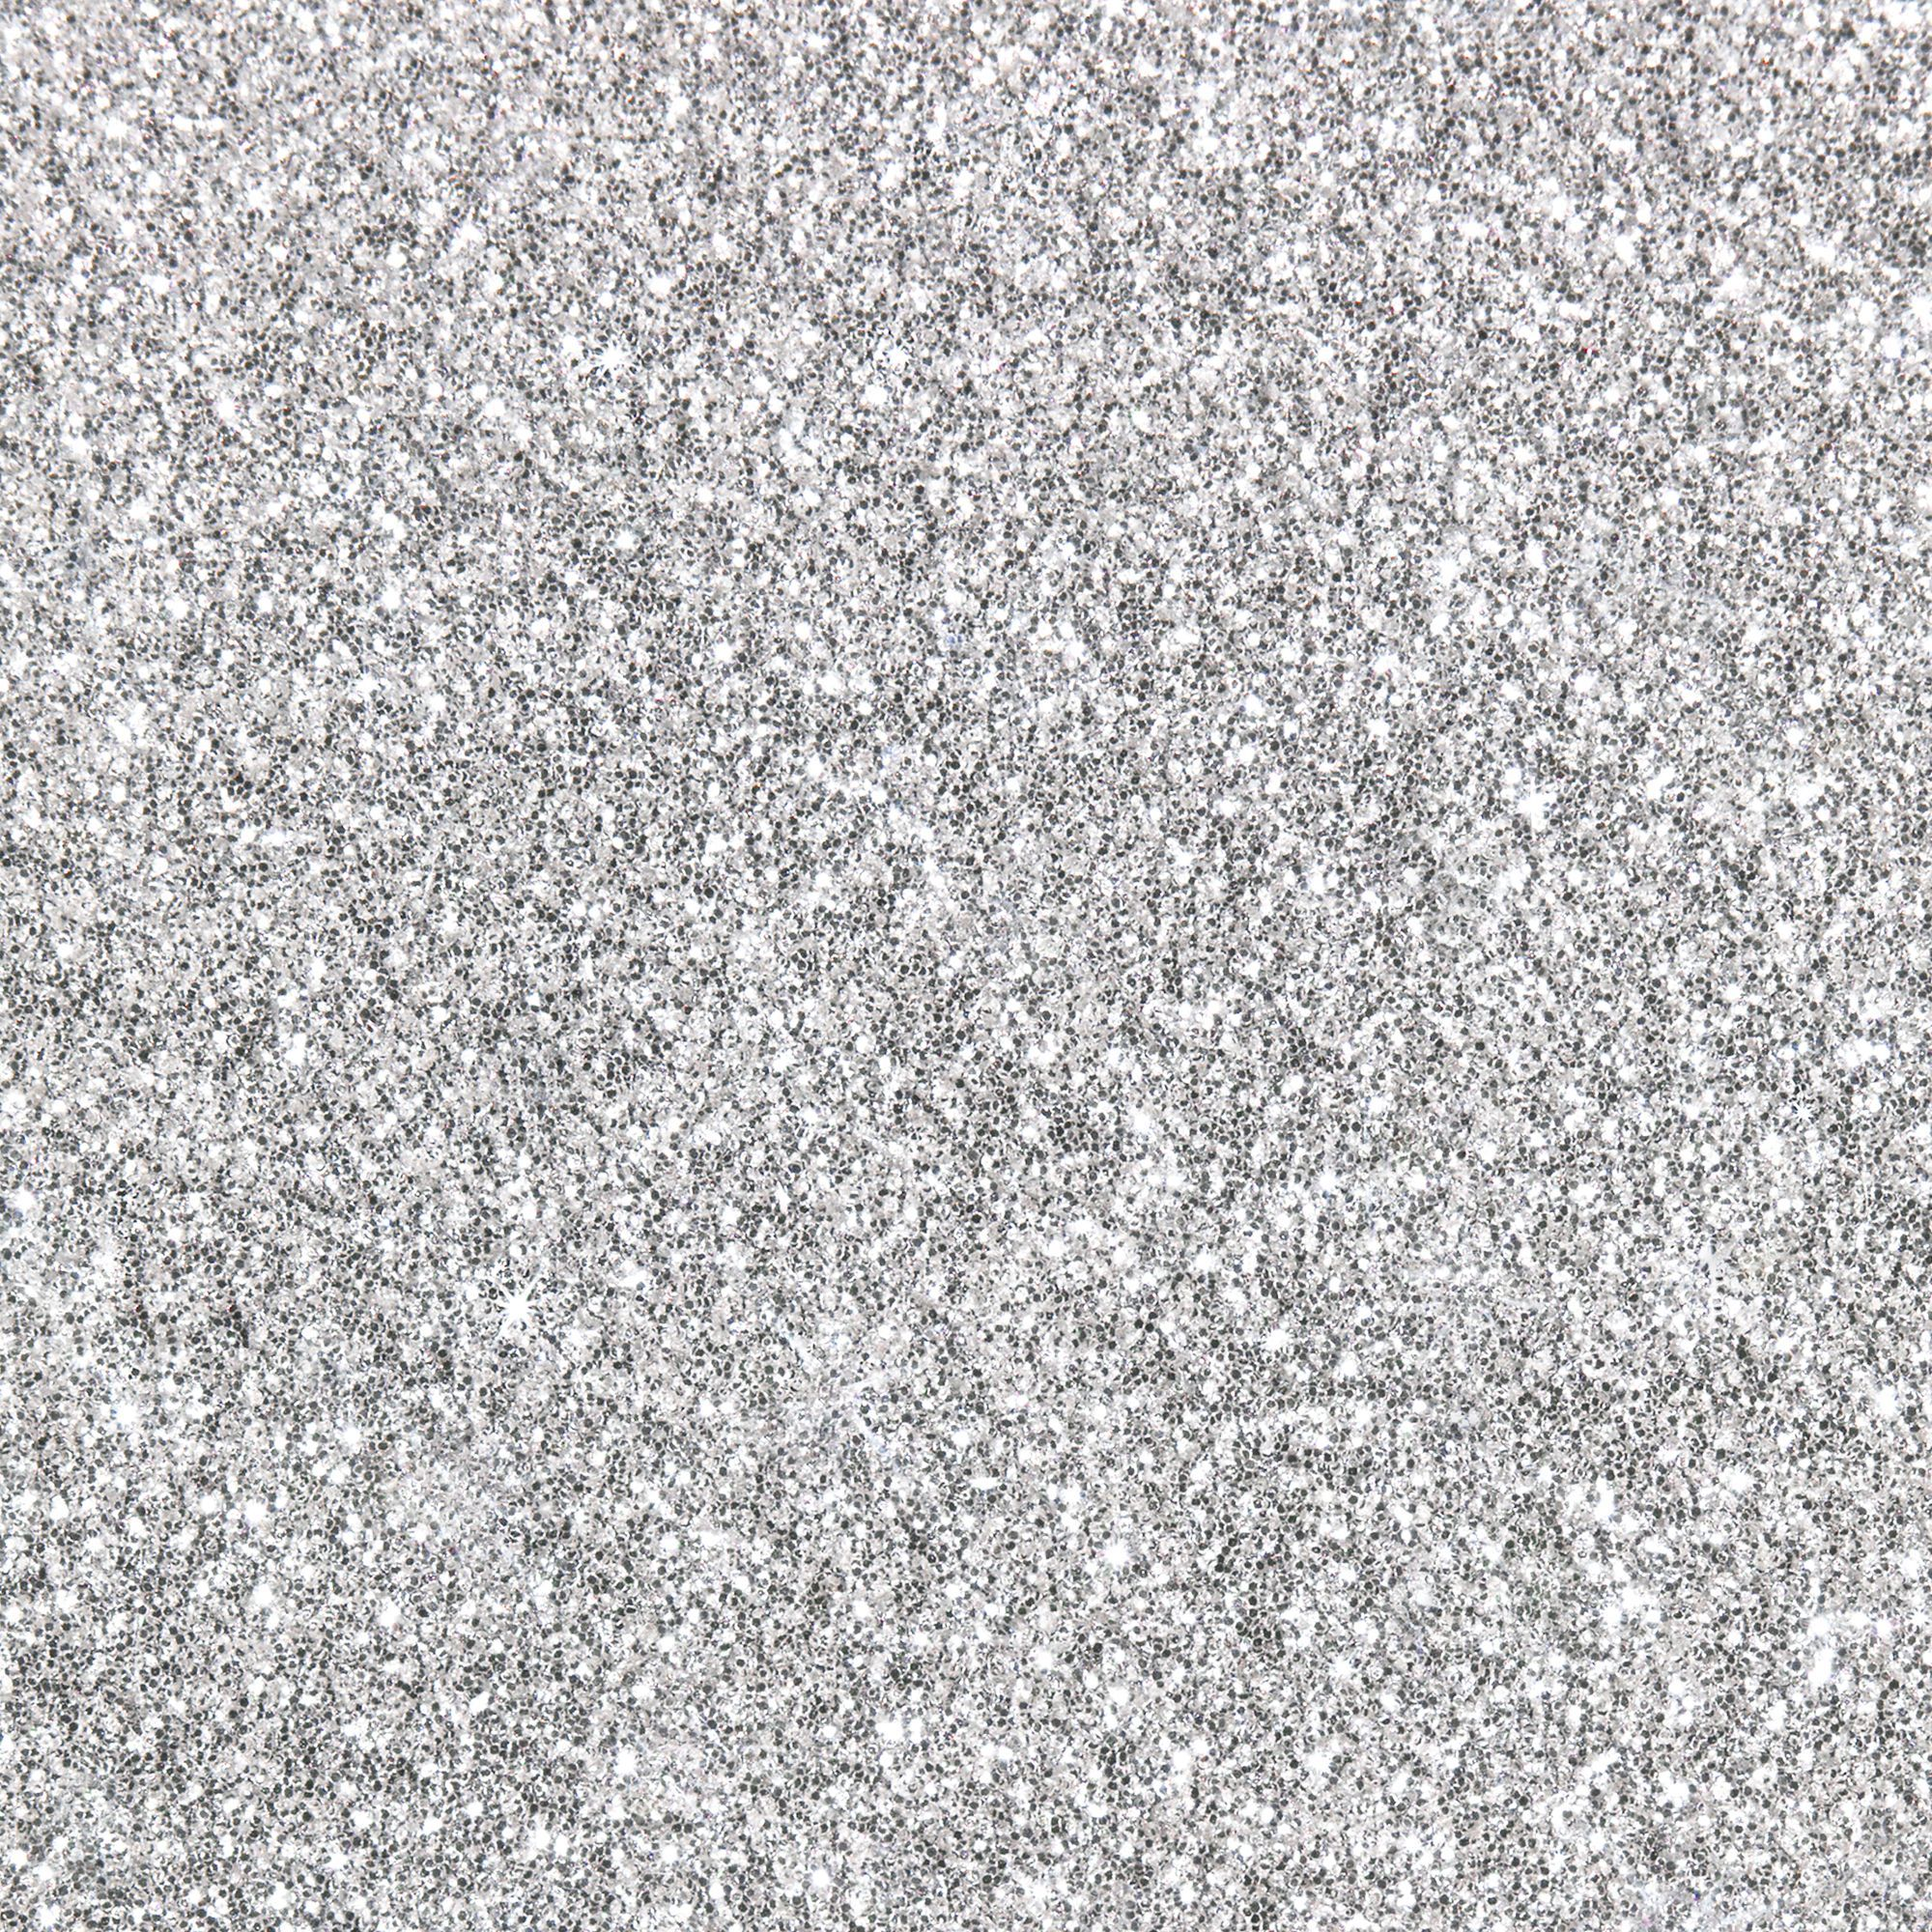 Sparkle Silver Texture Metallic Glitter Wallpaper